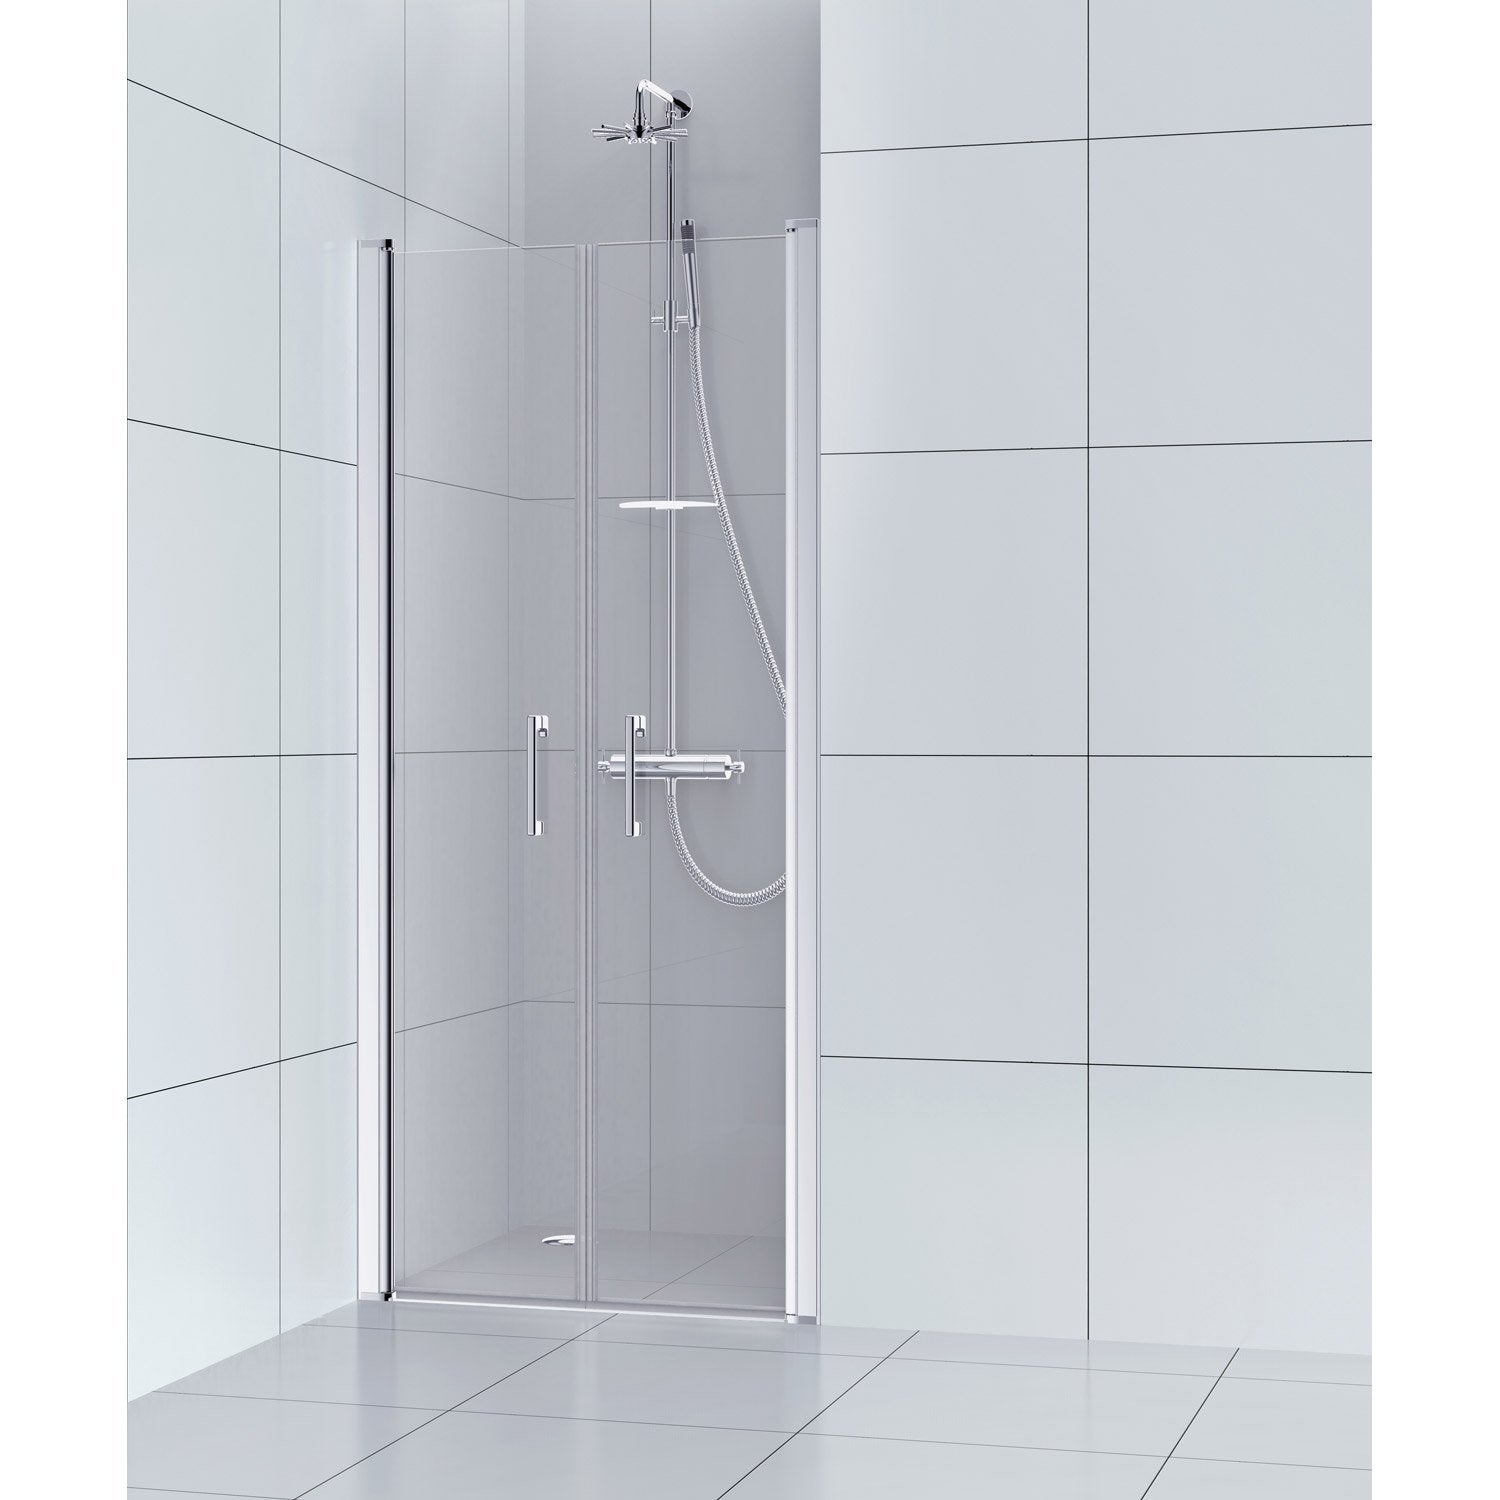 Porte de douche battante 80 cm transparent remix leroy for Porte douche largeur 60 cm